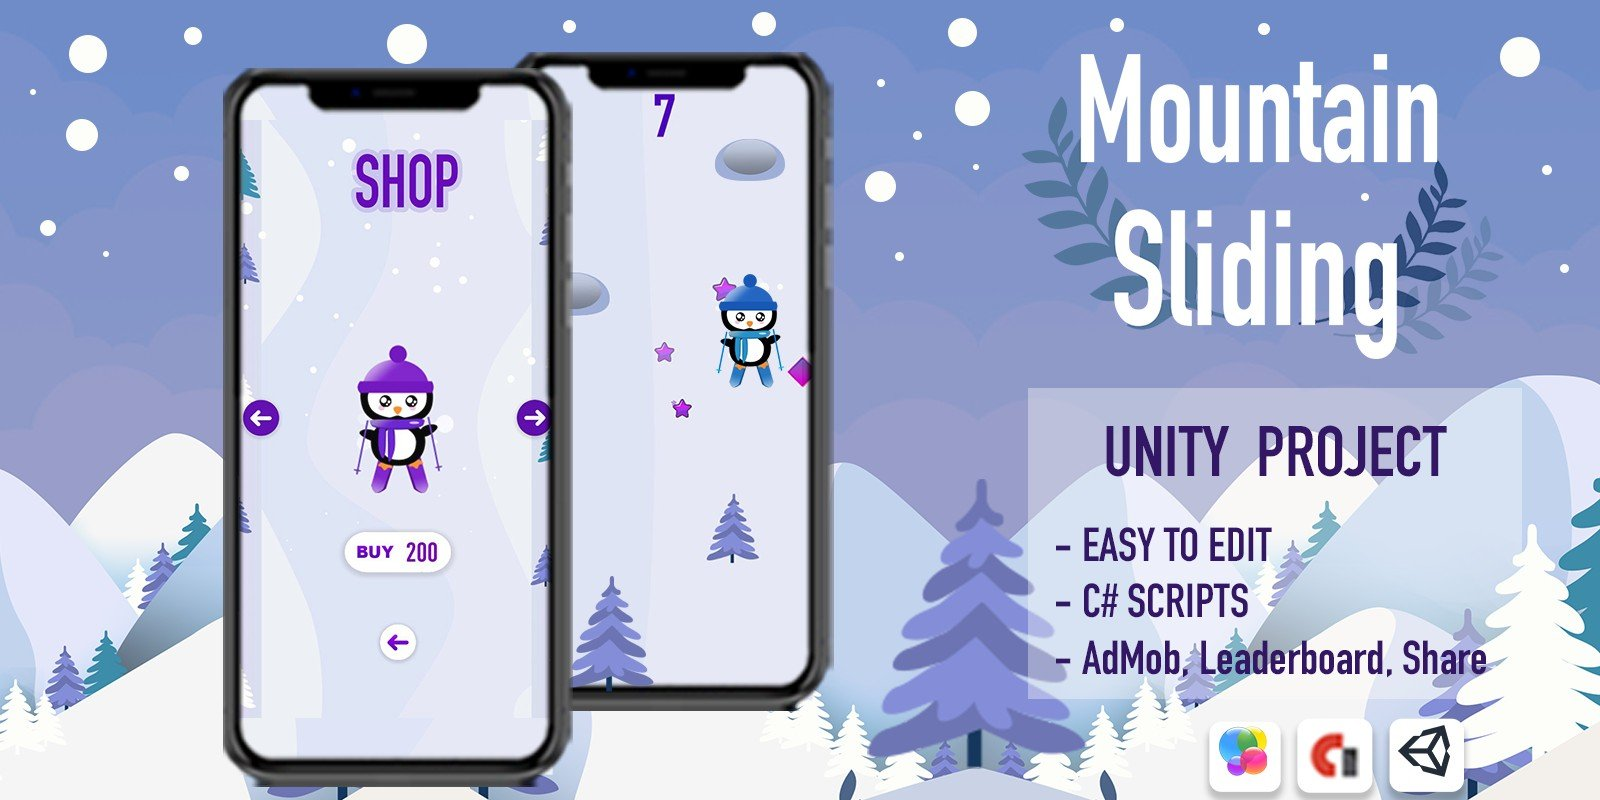 Mountain Sliding - iOS Template